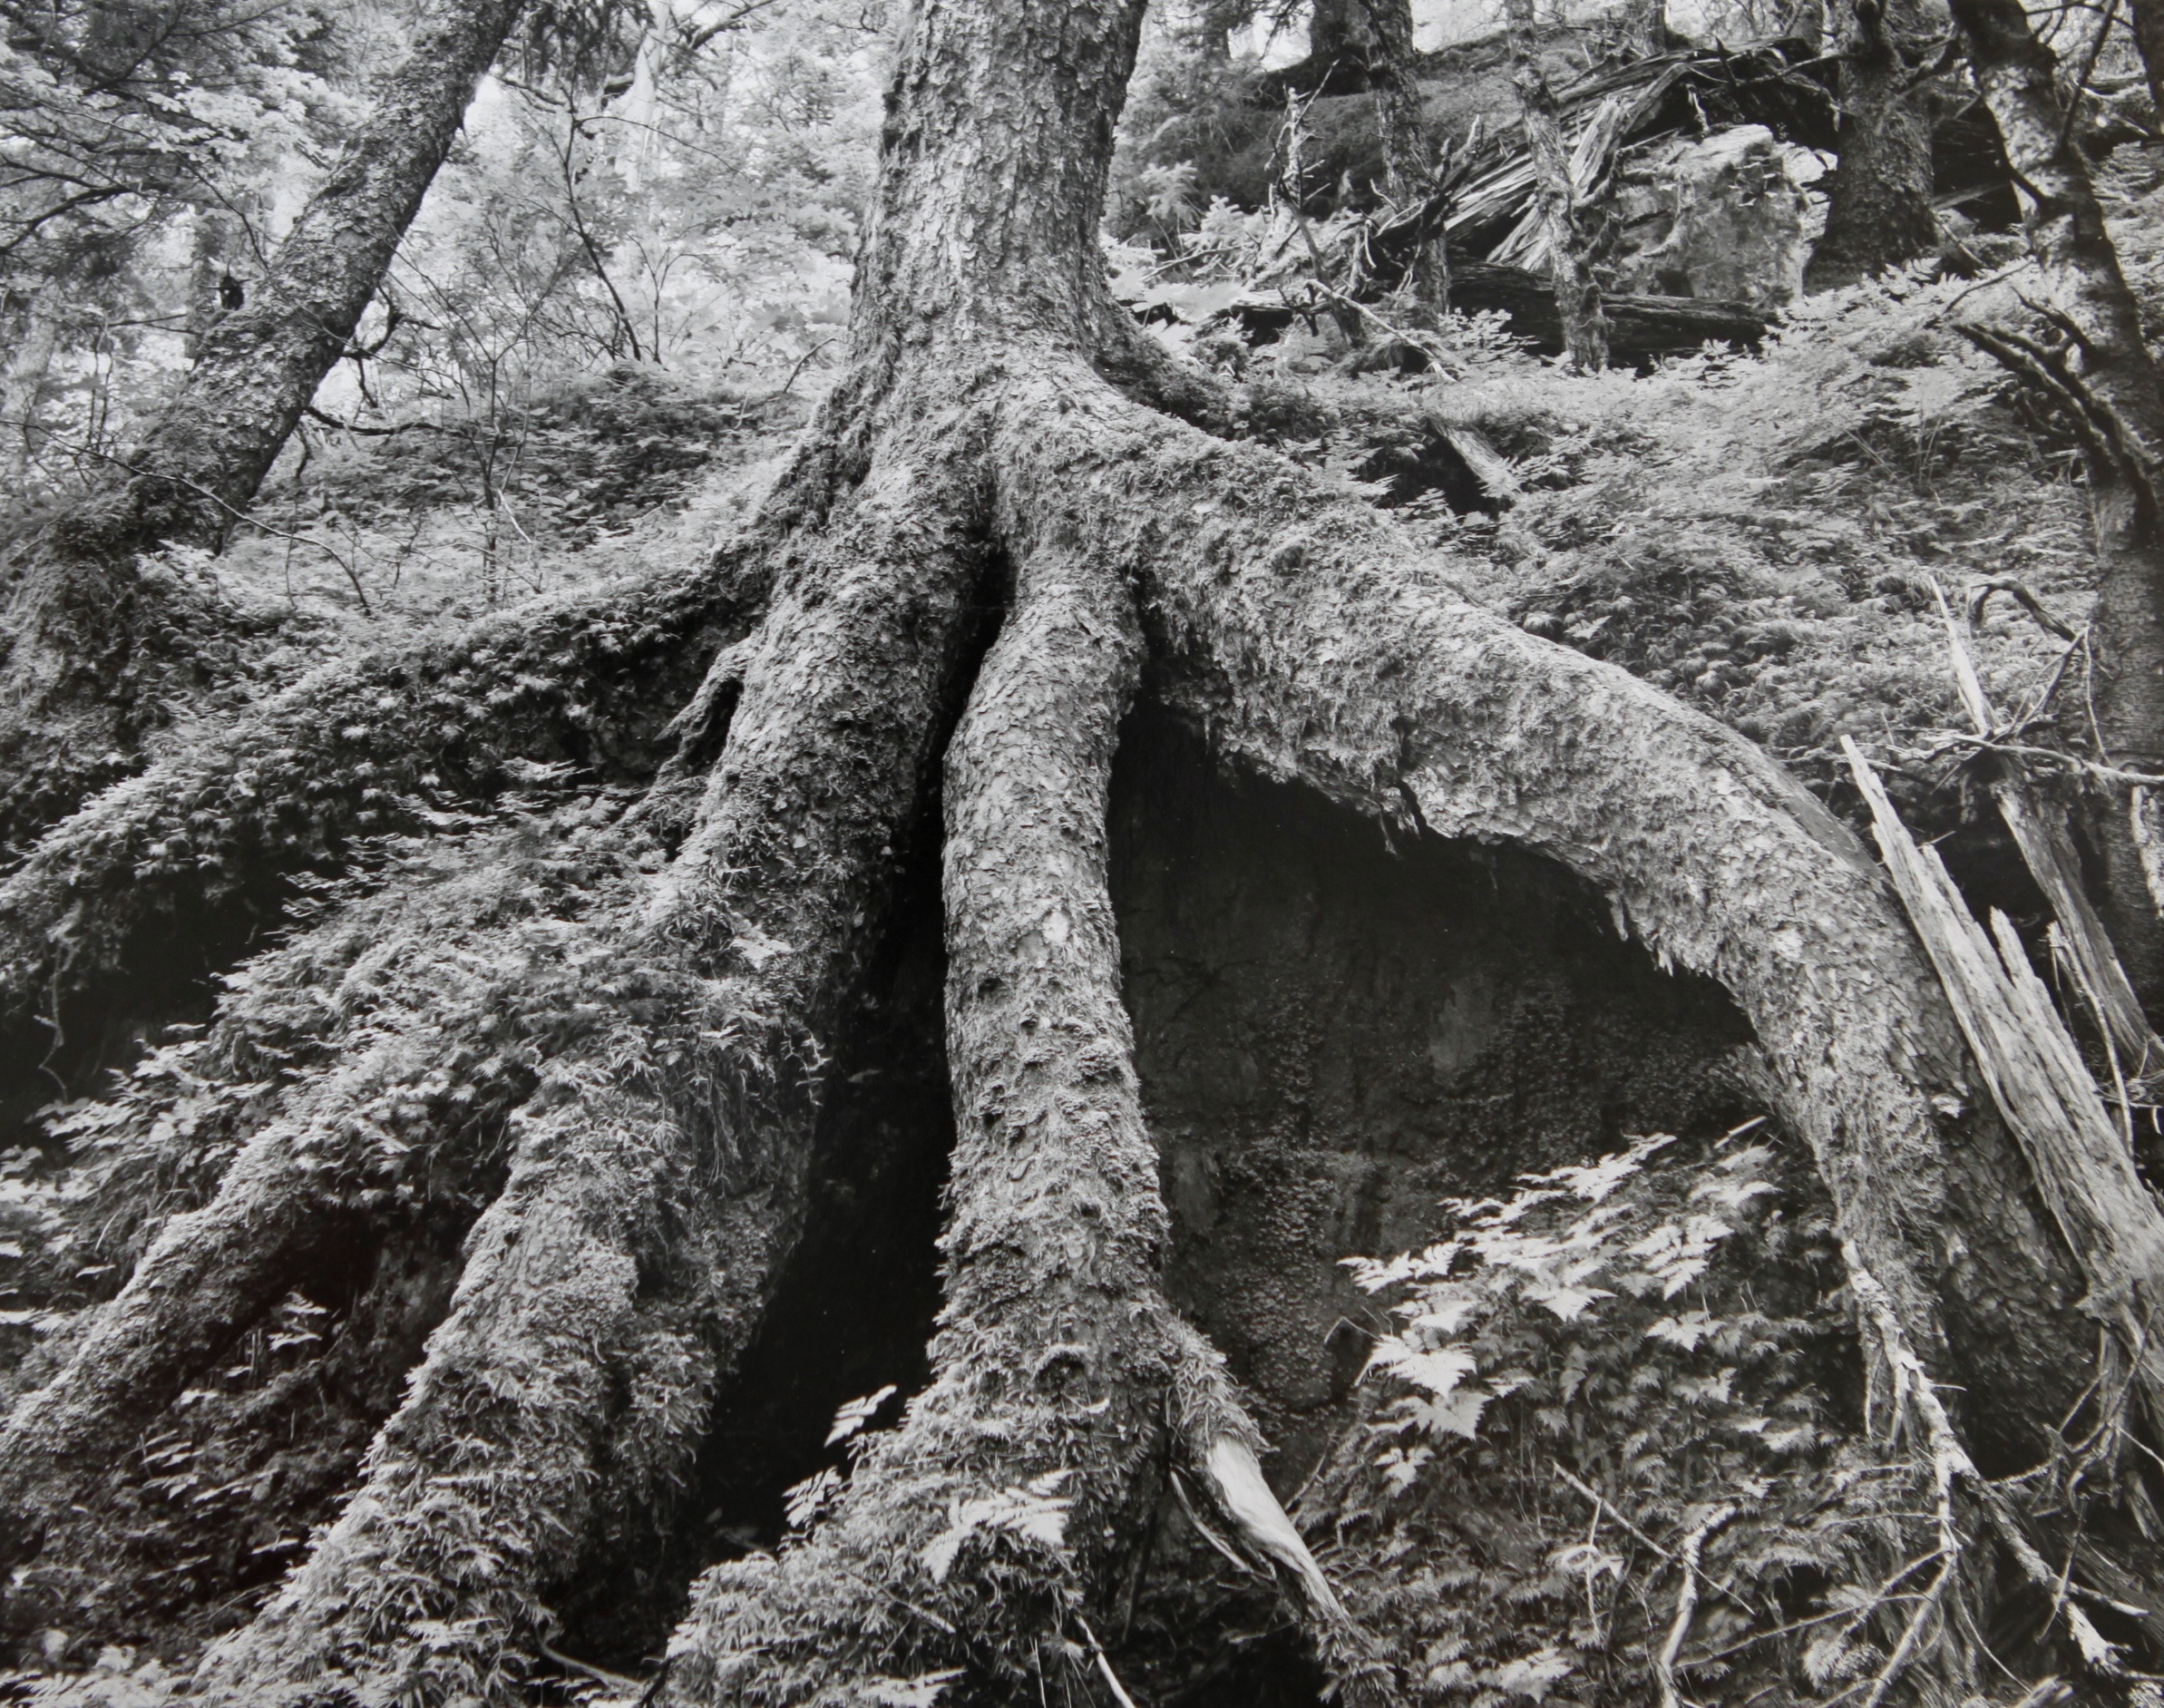 Roots, Chygach State Park, Alaska